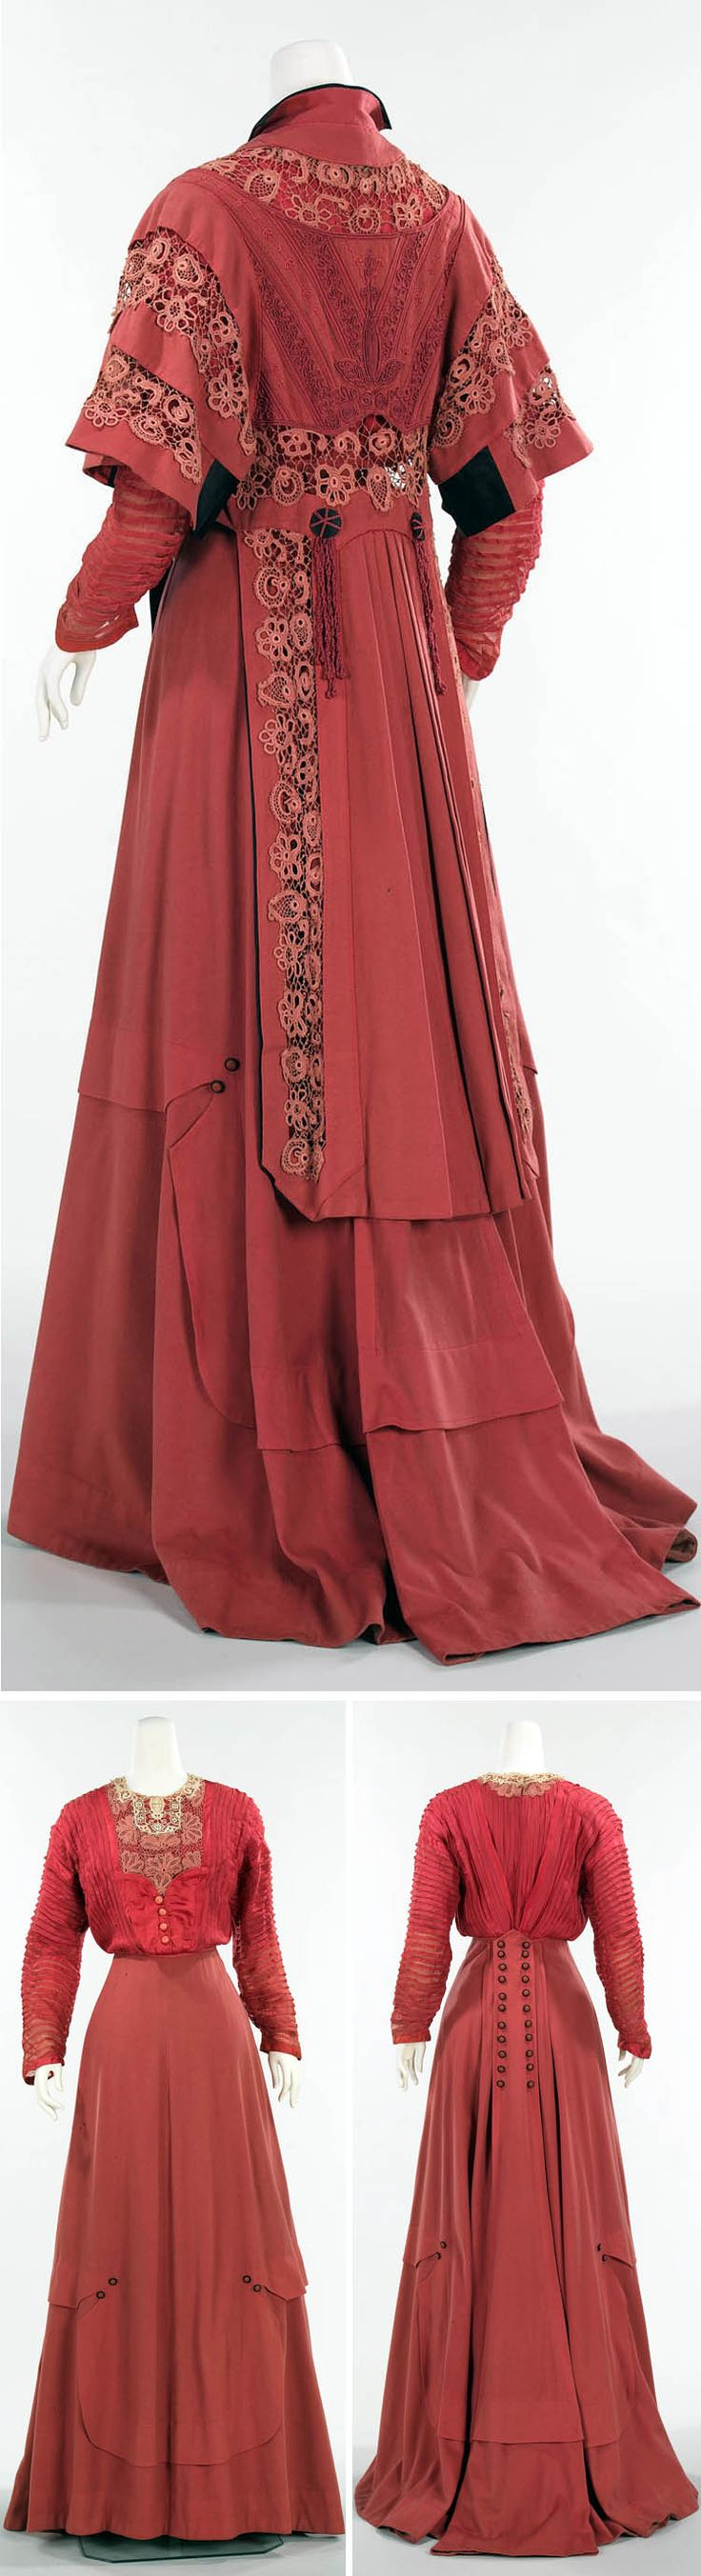 "Ensemble, James McCreery Co., New York, ca. 1907. Wool, silk, cotton. Metropolitan Museum of Art: ""This detailed American day ensemble is a finely detailed example of the period. According to the donor, Mrs. Philip J. Roosevelt, it was worn by her sister Gladys Roosevelt."" The donor was a cousin to Theodore Roosevelt."""